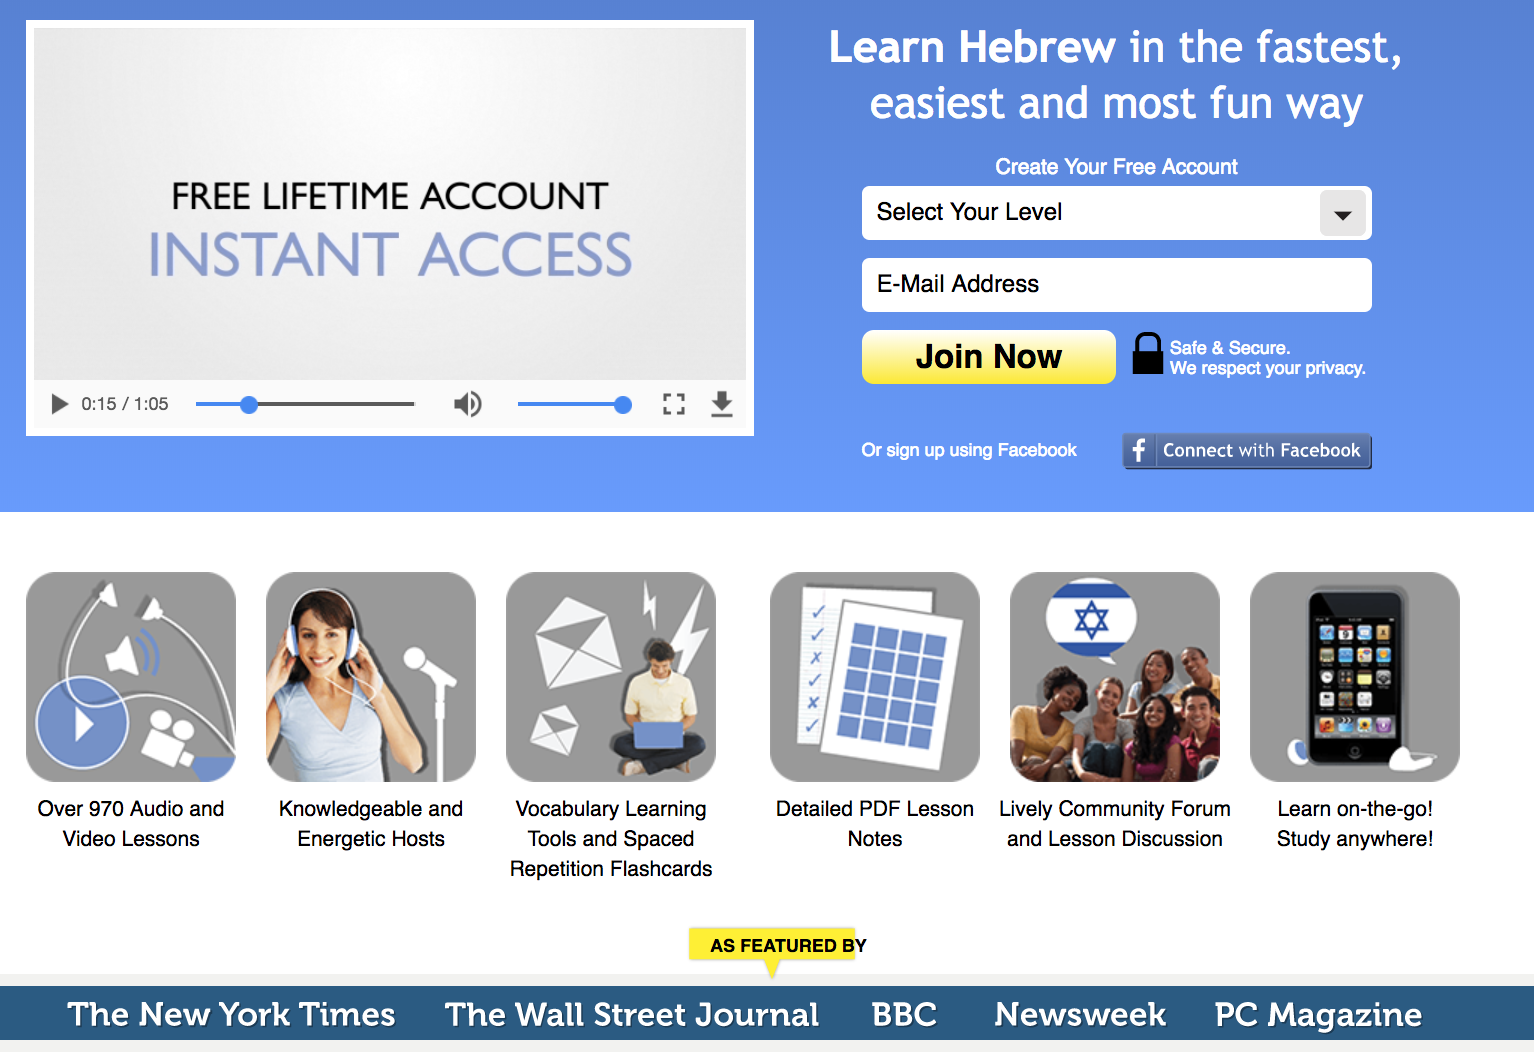 lhebrew learning websites